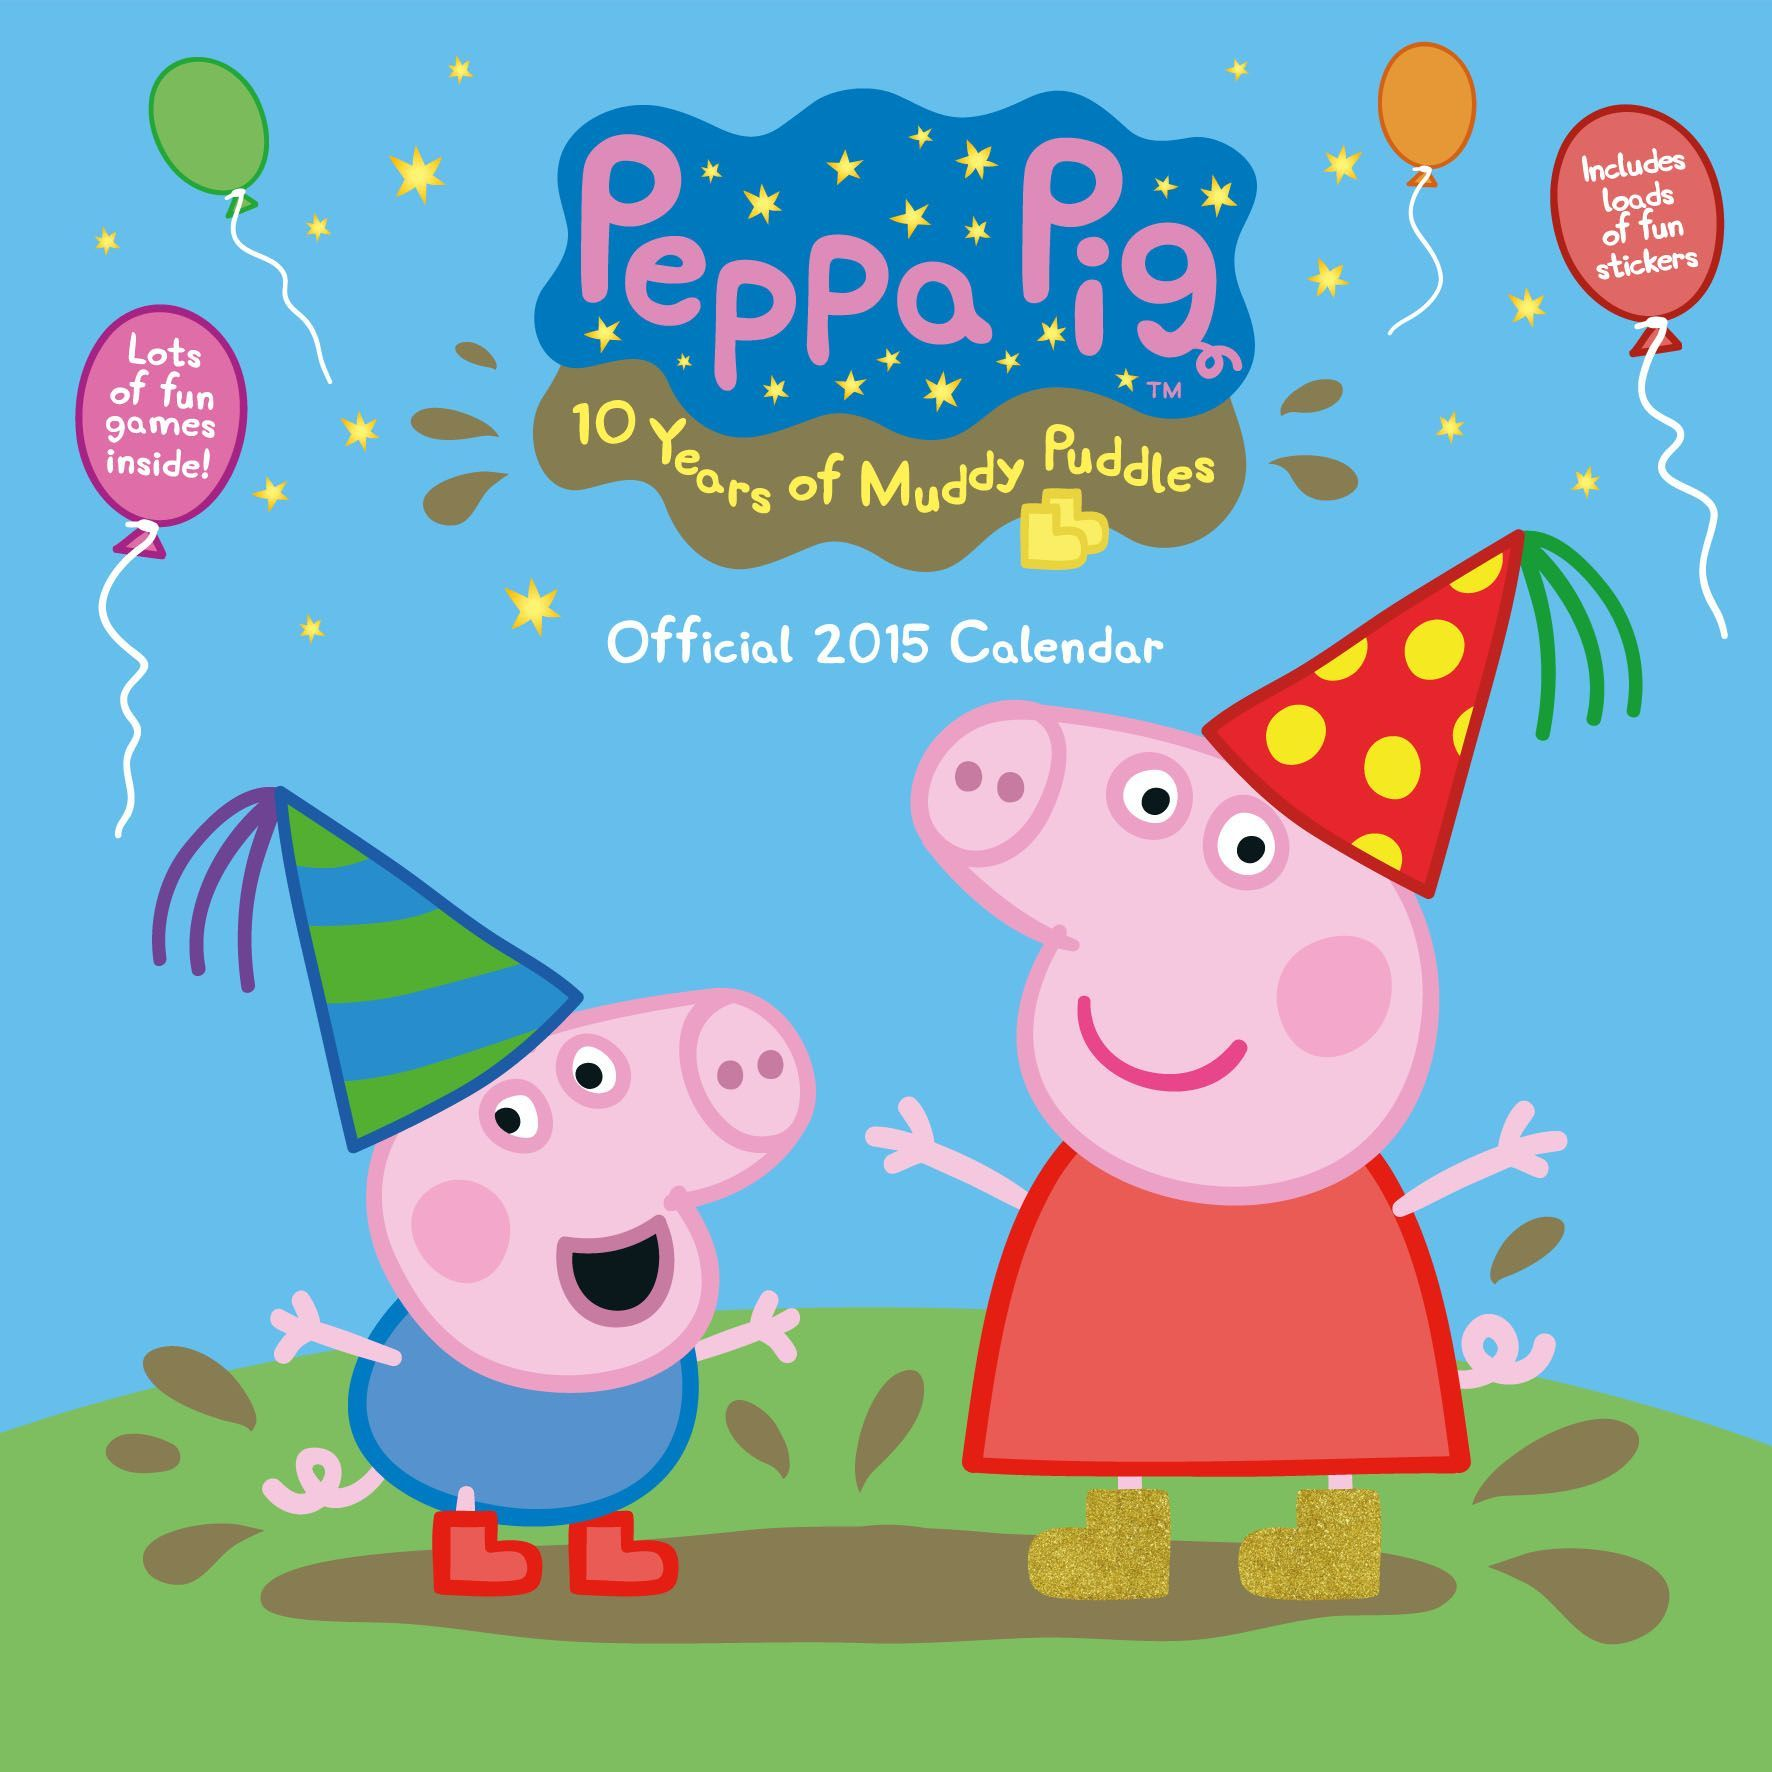 Peppa Pig Birthday Wallpapers Top Free Peppa Pig Birthday Backgrounds Wallpaperaccess